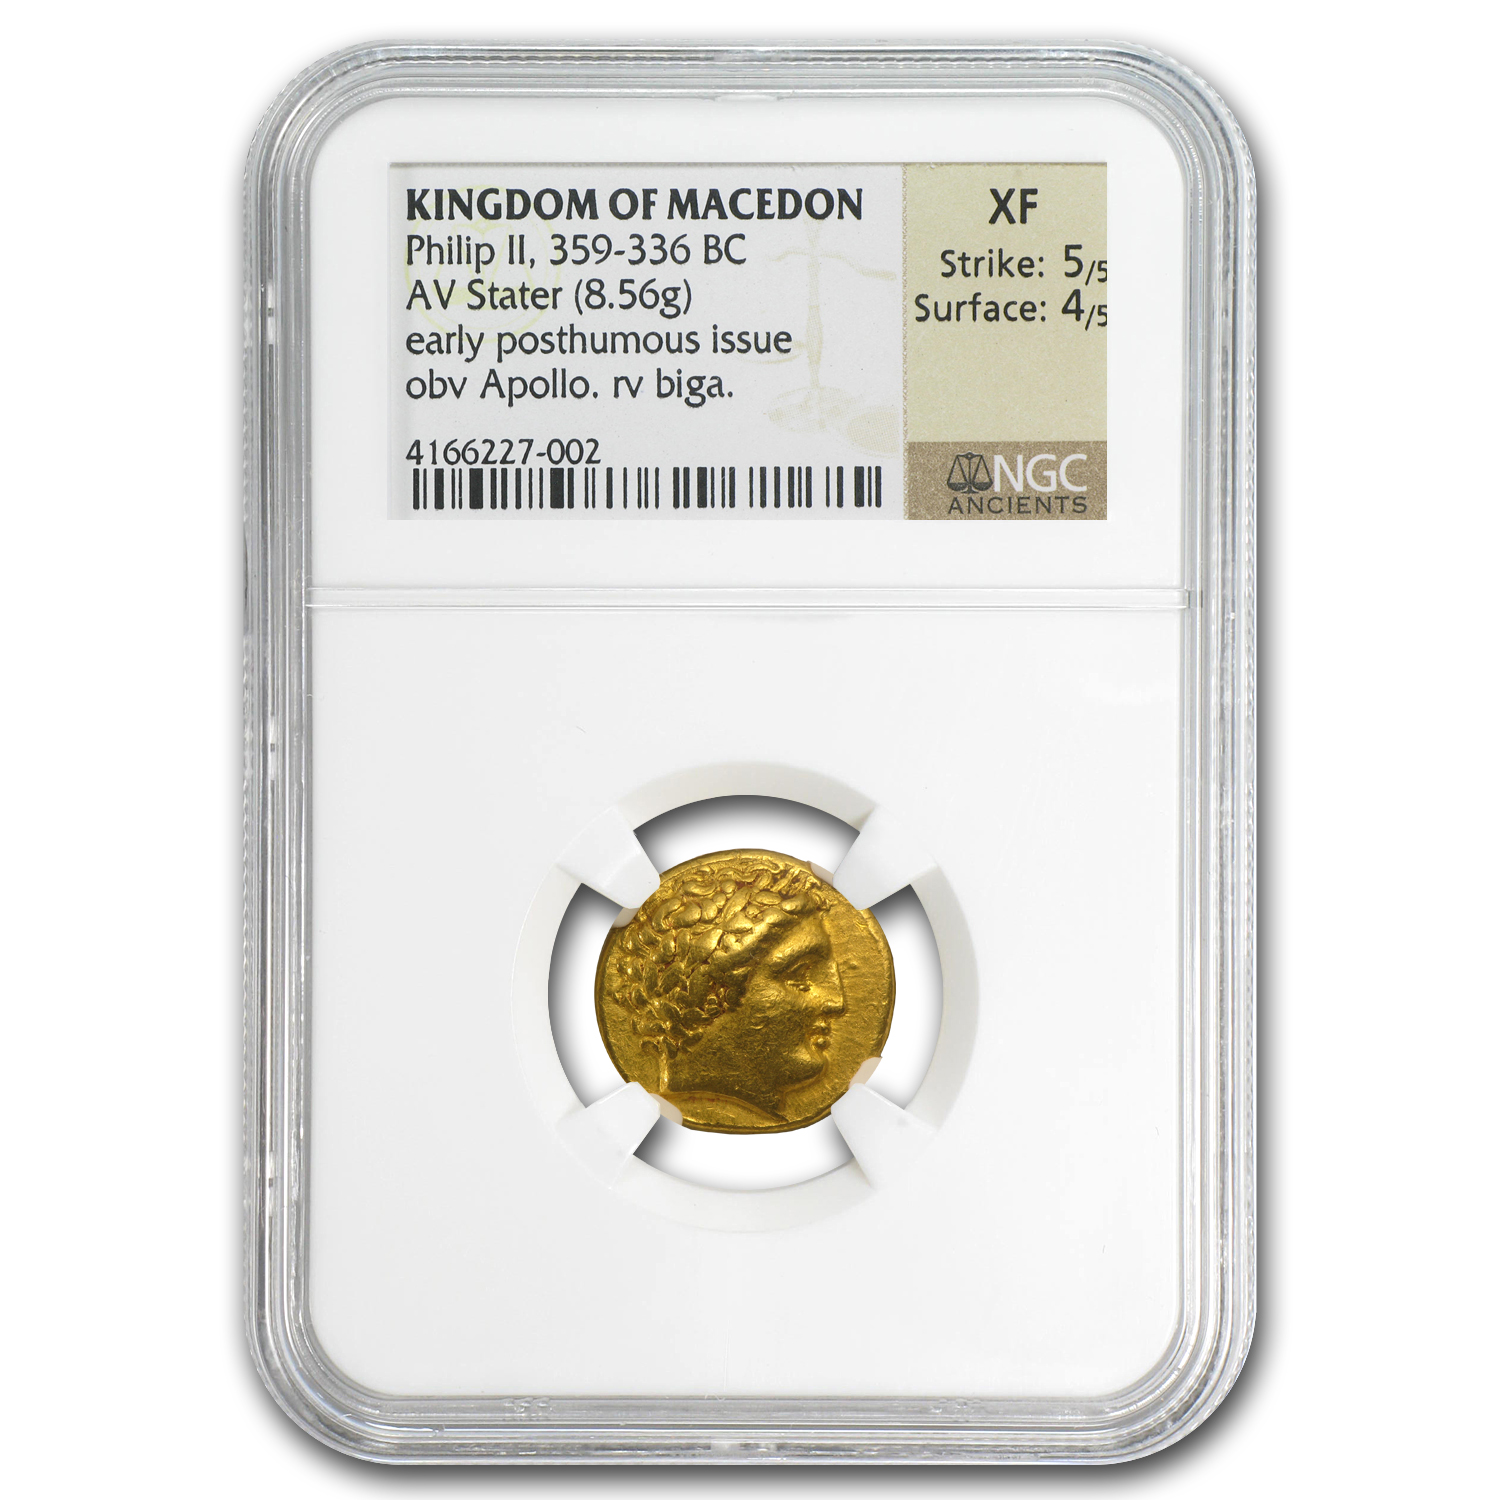 Macedonia Gold Stater of Philip II XF NGC (359-336 BC)